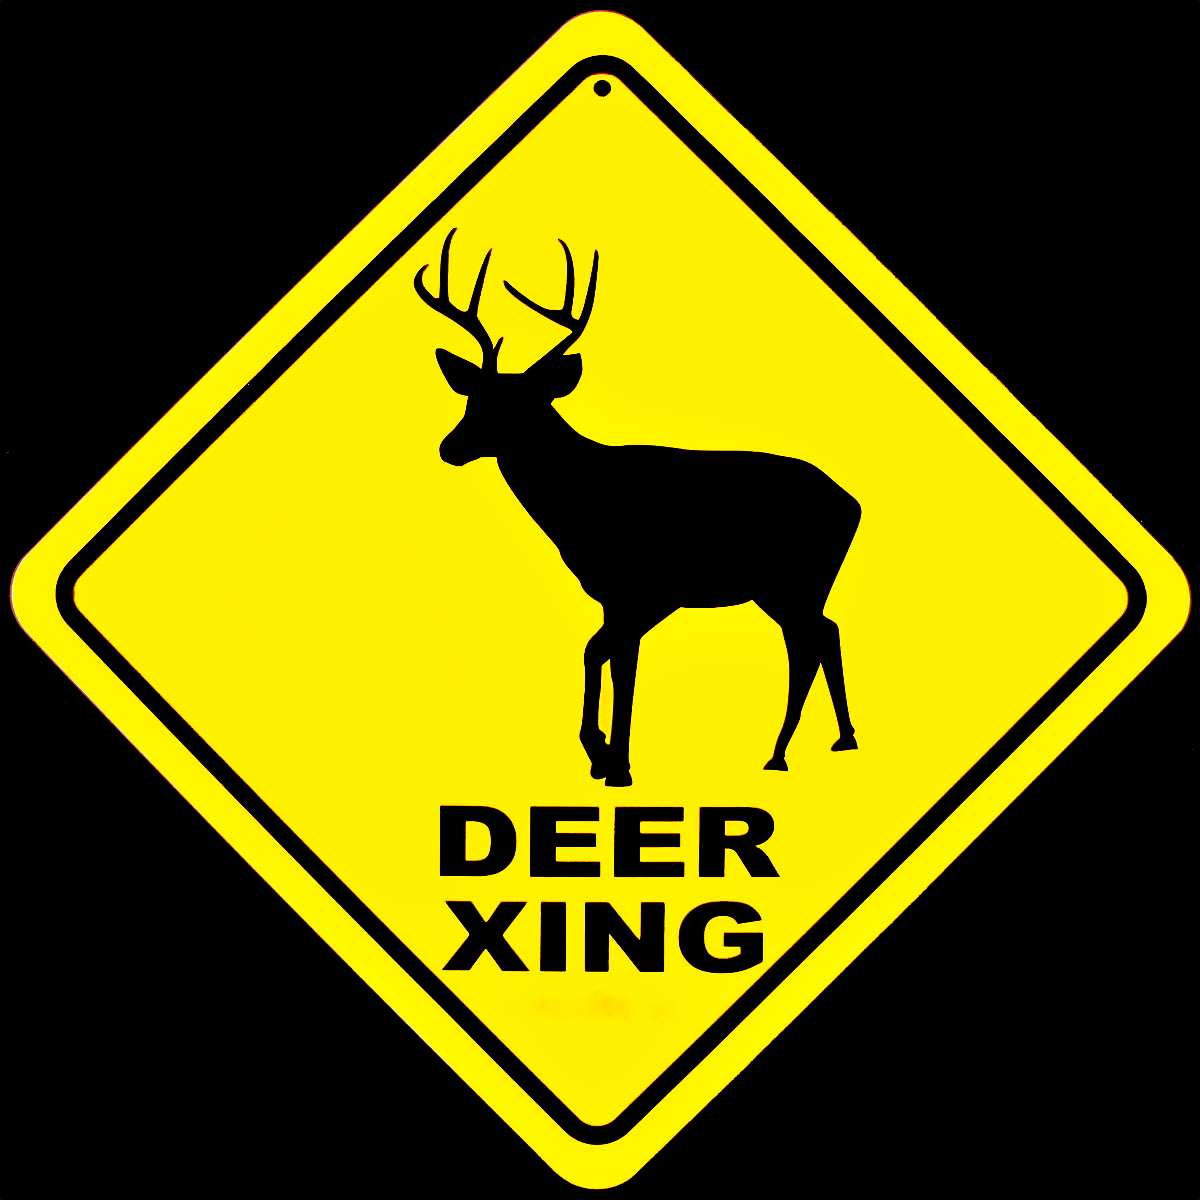 Radio Caller Suggests Deer Crossing Signs Be Moved. Genogram Signs Of Stroke. Scale Signs. Important Signs Of Stroke. Tropical Depression Signs. Tribal Signs Of Stroke. Body Language Signs. February 14 Signs Of Stroke. Hairstyle Signs